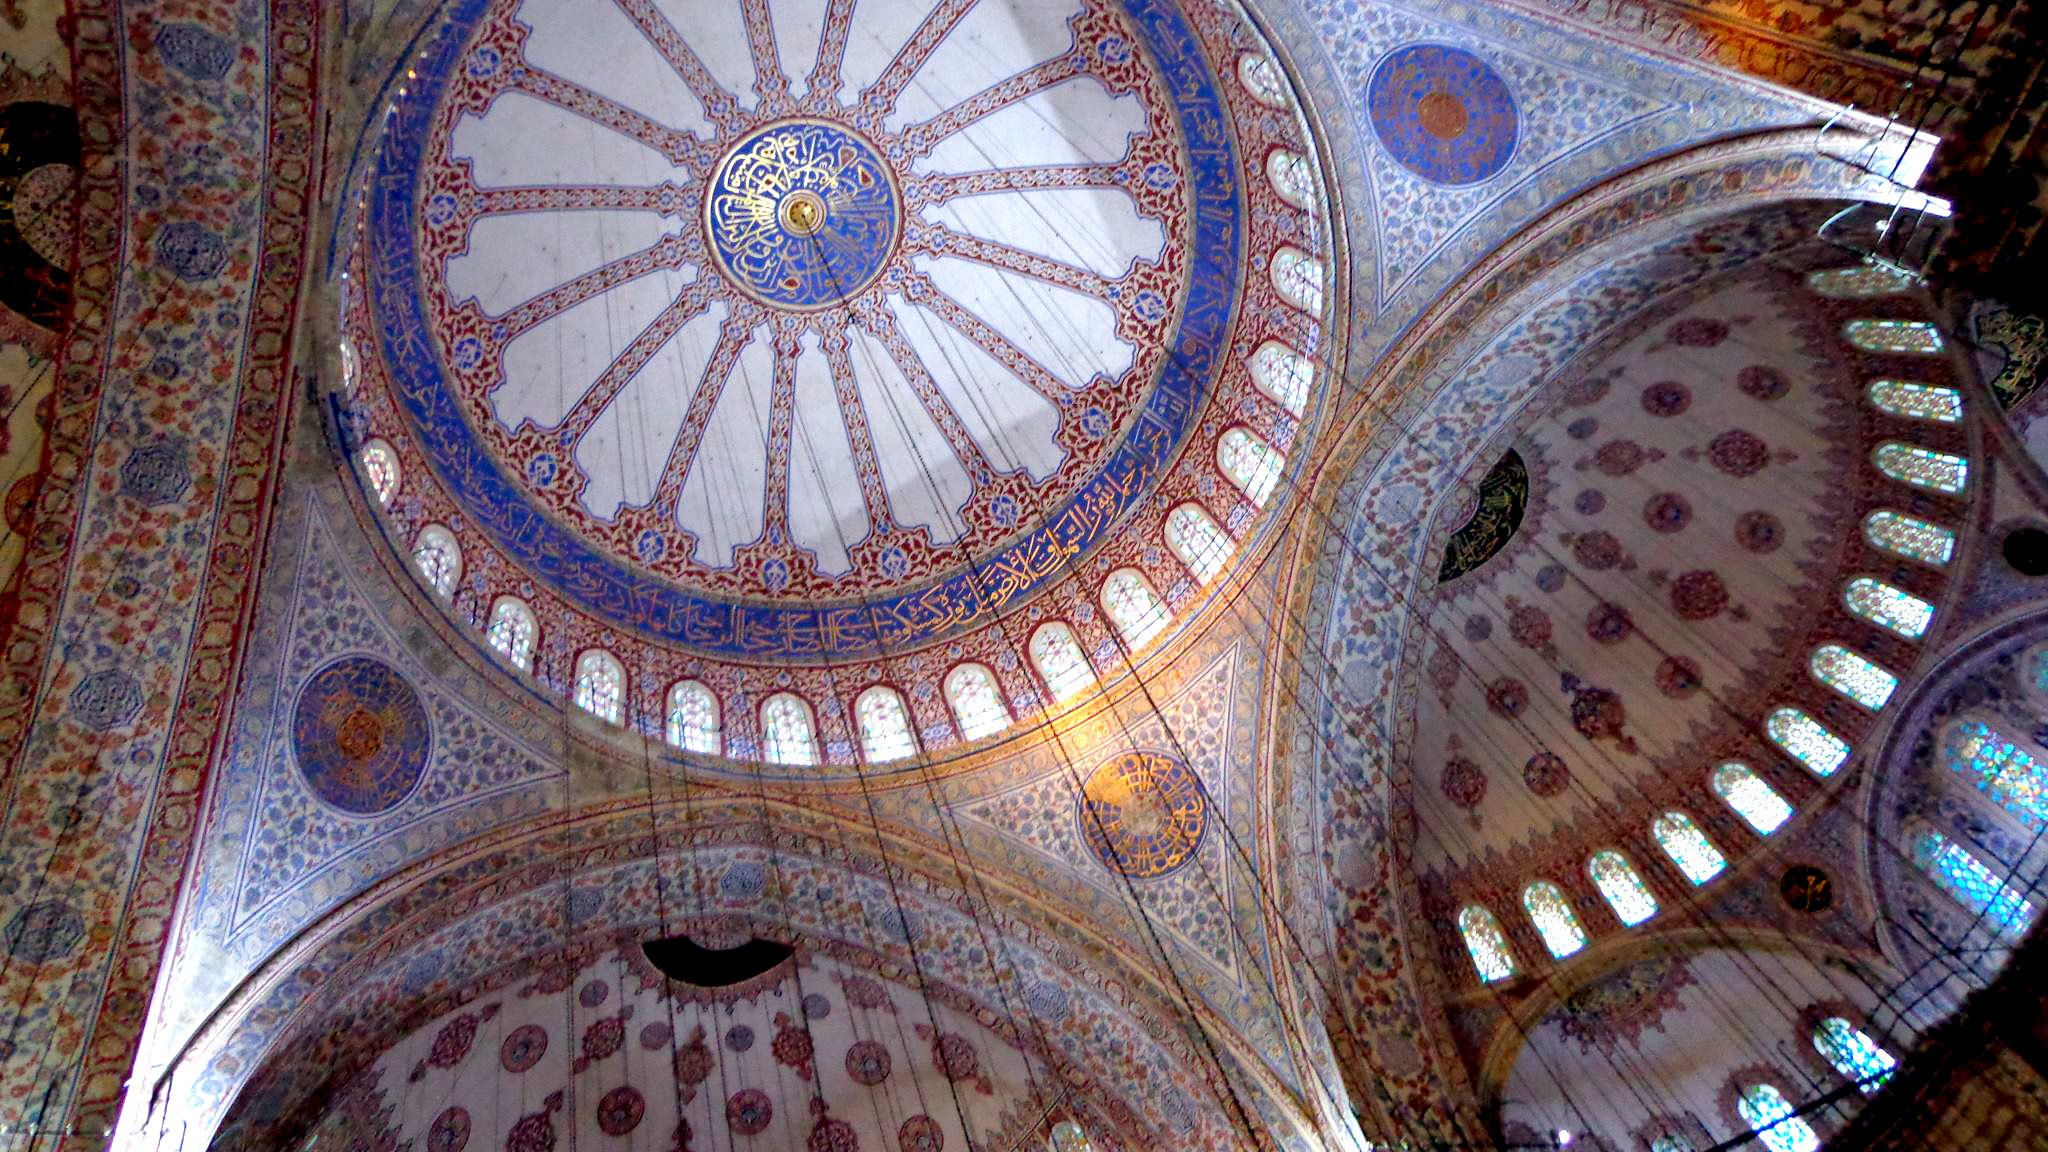 Dome inside the Blue Mosque in Istanbul